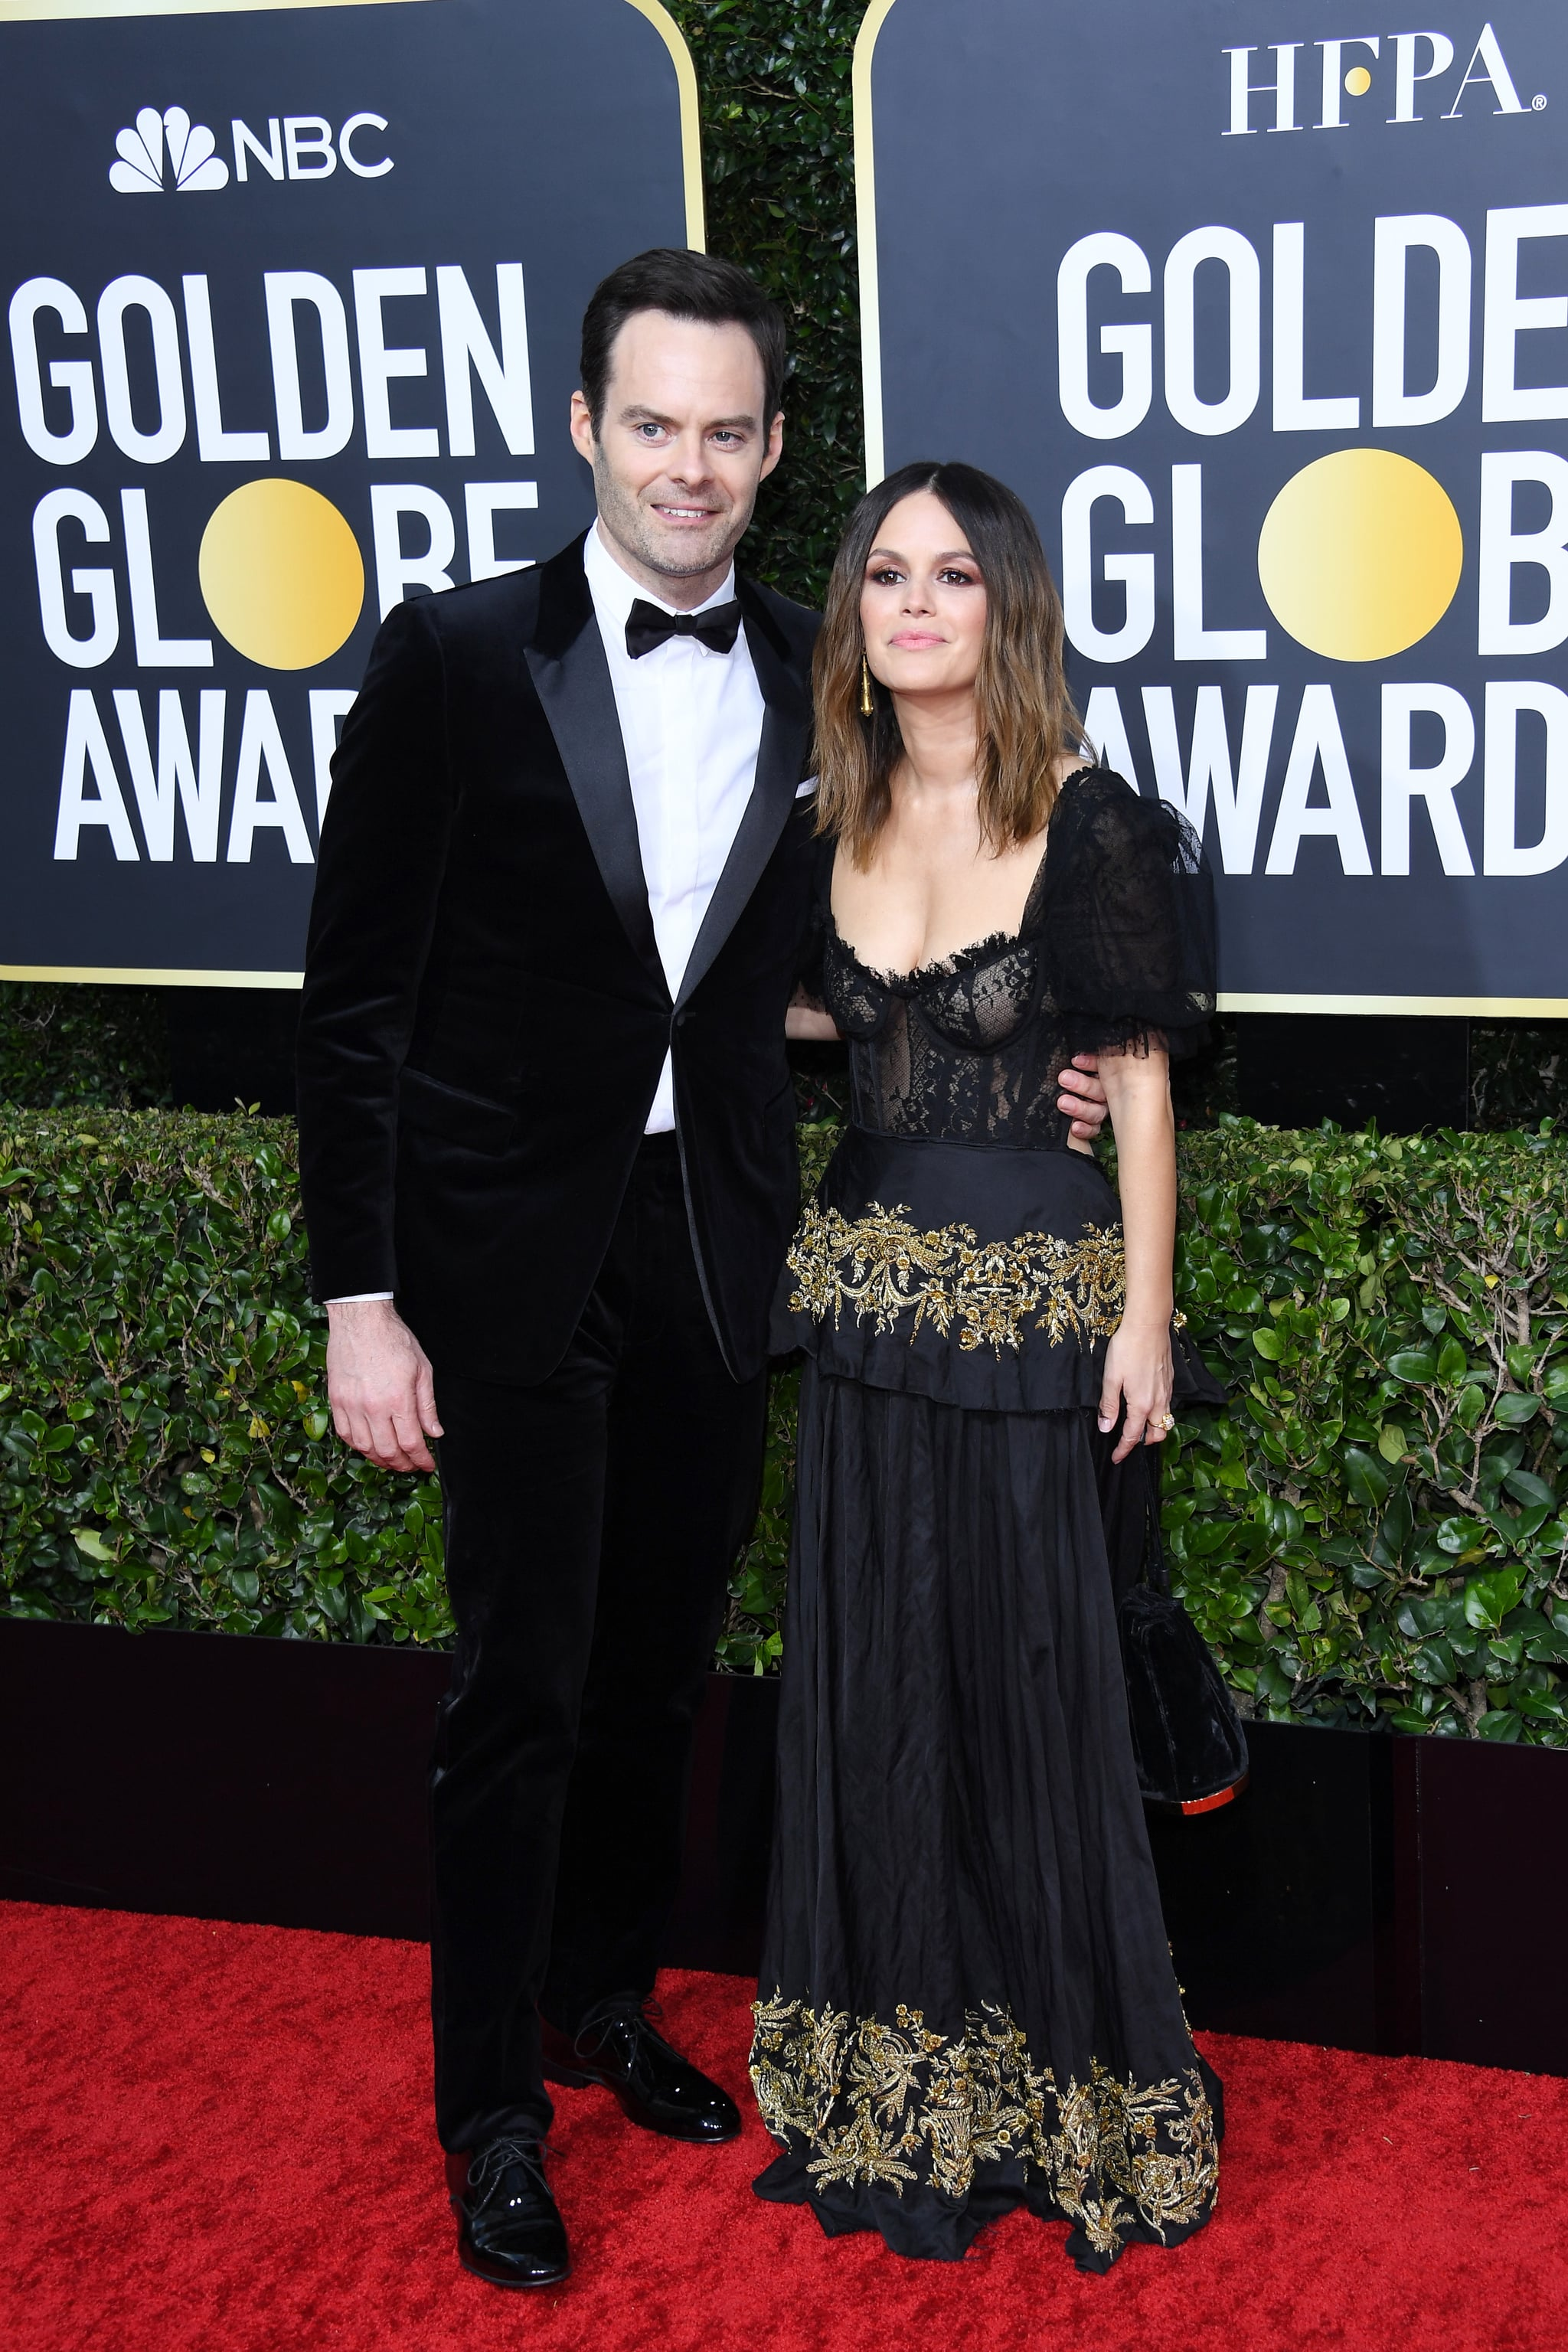 BEVERLY HILLS, CALIFORNIA - JANUARY 05: Bill Hader and Rachel Bilson attend the 77th Annual Golden Globe Awards at The Beverly Hilton Hotel on January 05, 2020 in Beverly Hills, California. (Photo by Daniele Venturelli/WireImage)